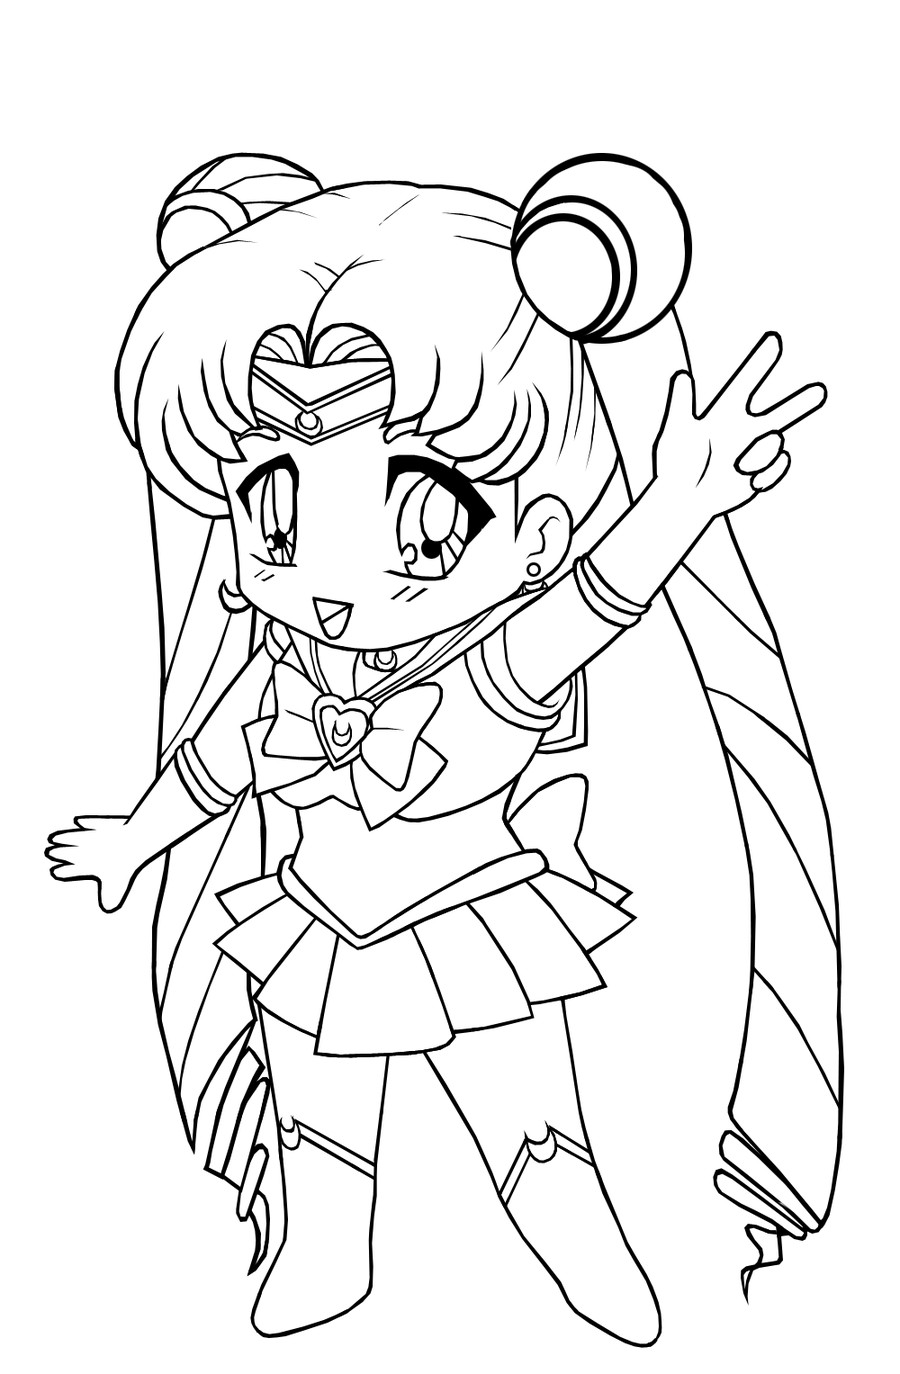 Best ideas about Coloring Pages For Girls 12 And Up . Save or Pin Free Printable Chibi Coloring Pages For Kids Now.